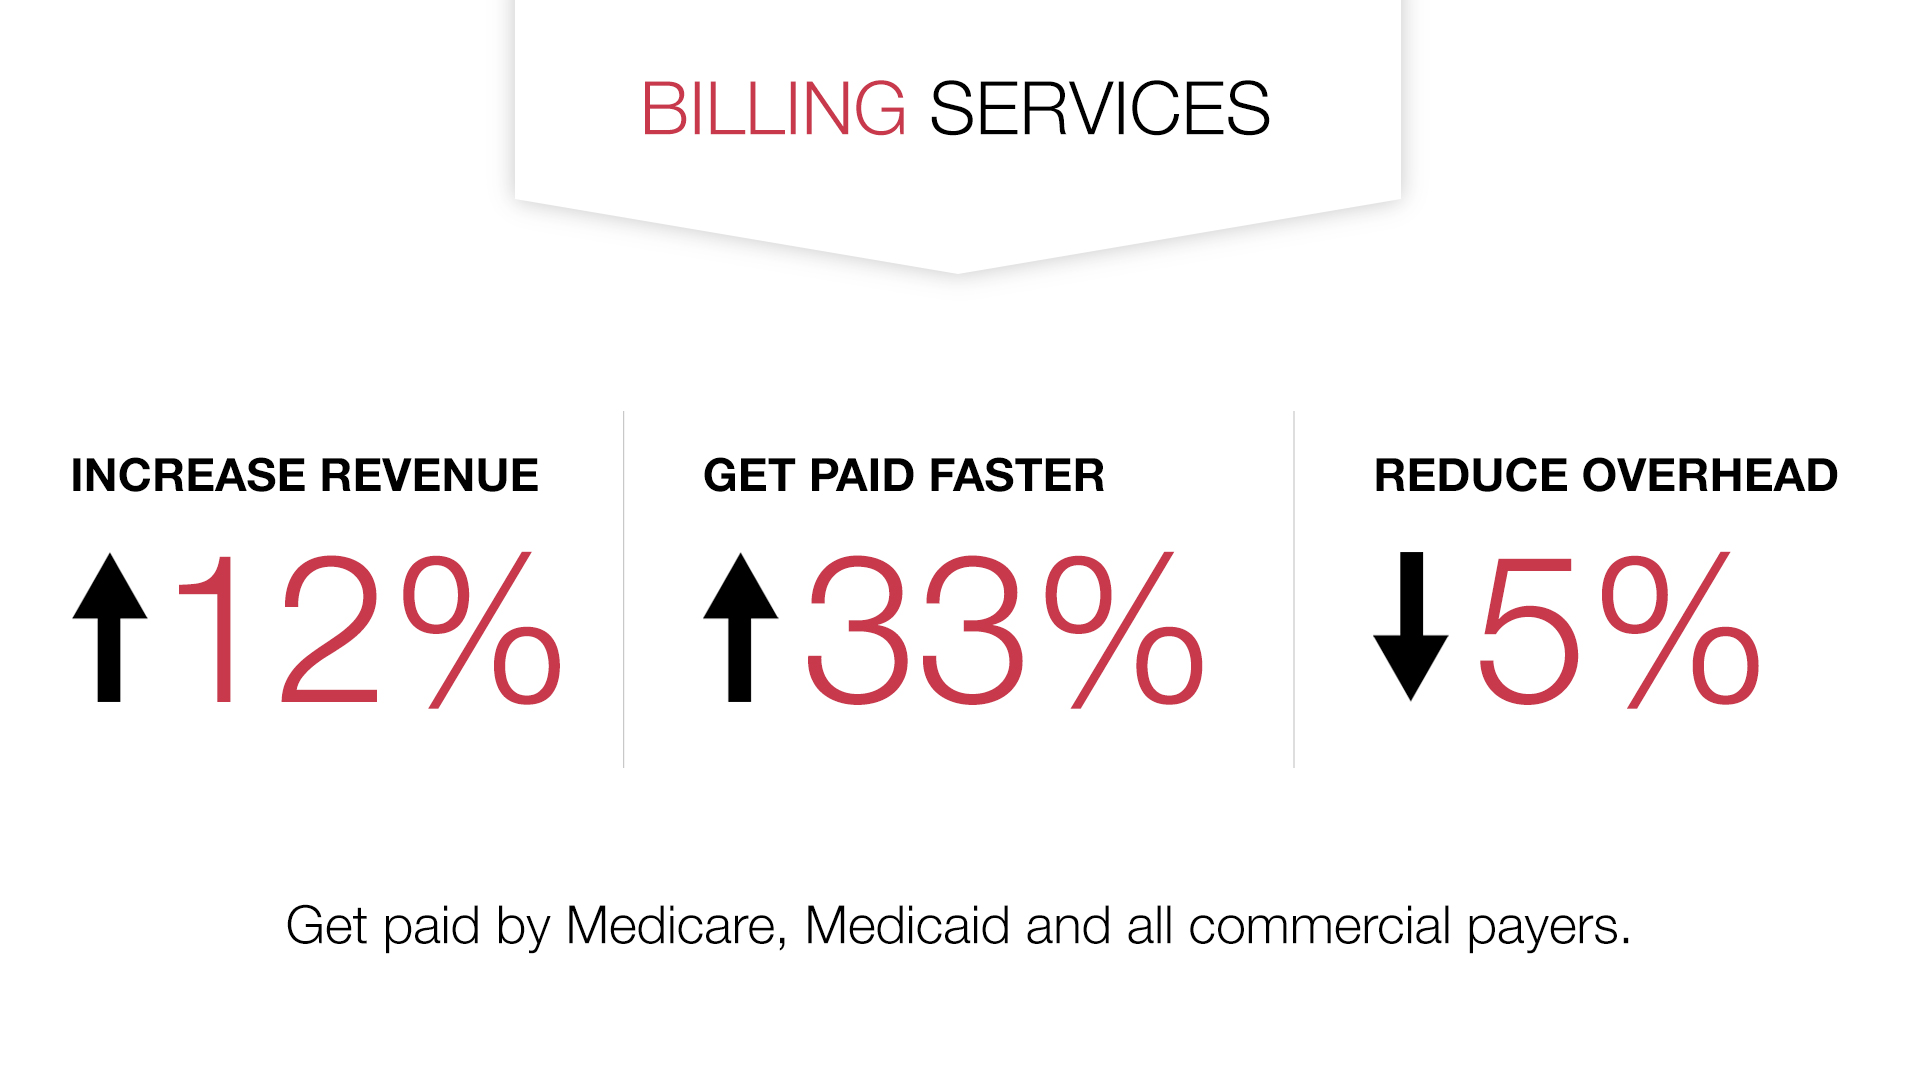 Billing services can increase revenue, help you get paid faster and reduce overhead.